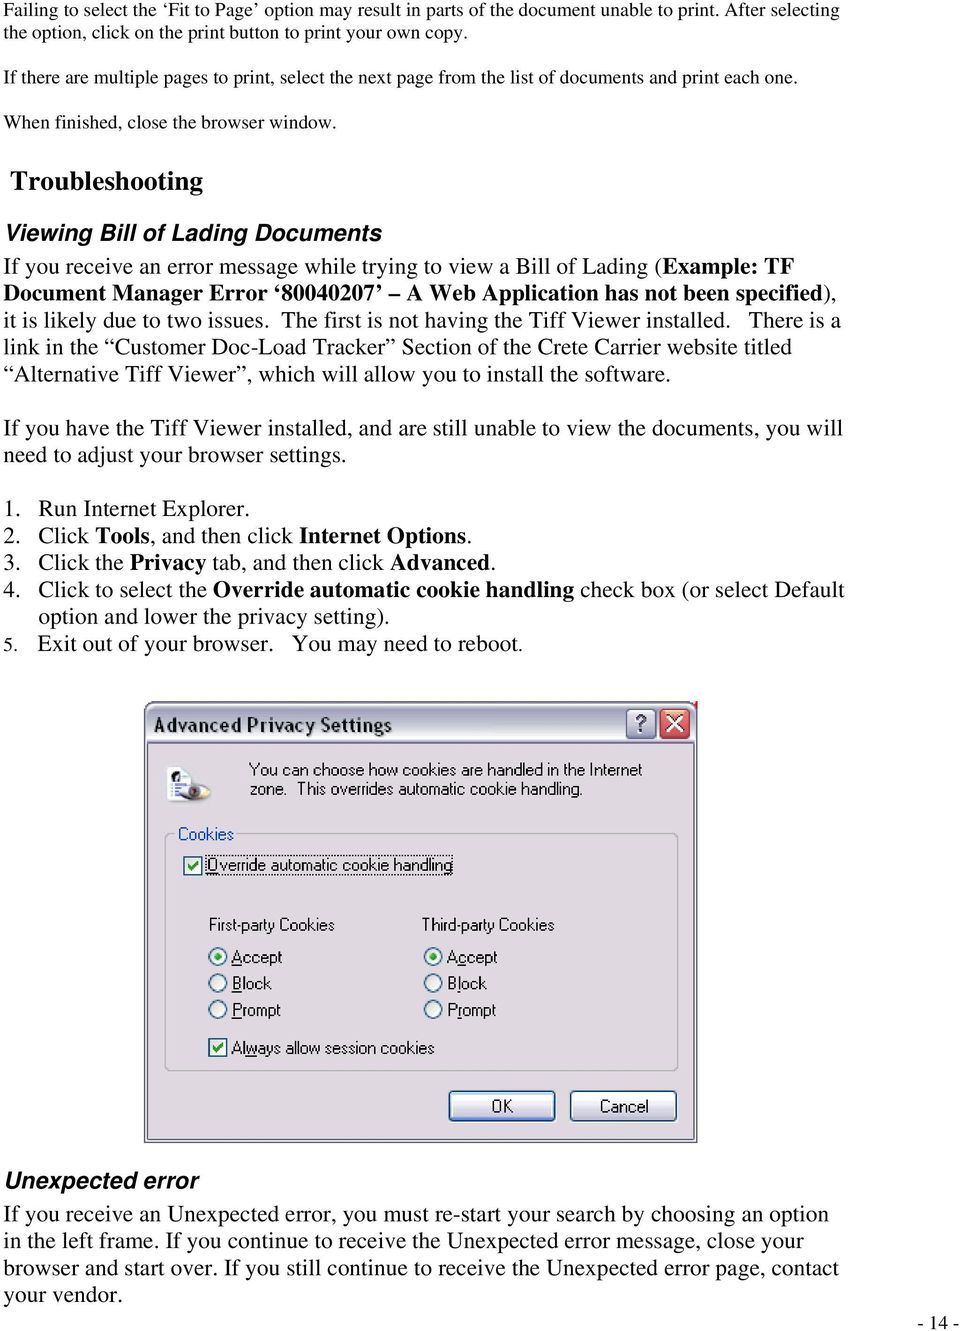 Troubleshooting Viewing Bill of Lading Documents If you receive an error message while trying to view a Bill of Lading (Example: TF Document Manager Error 80040207 A Web Application has not been